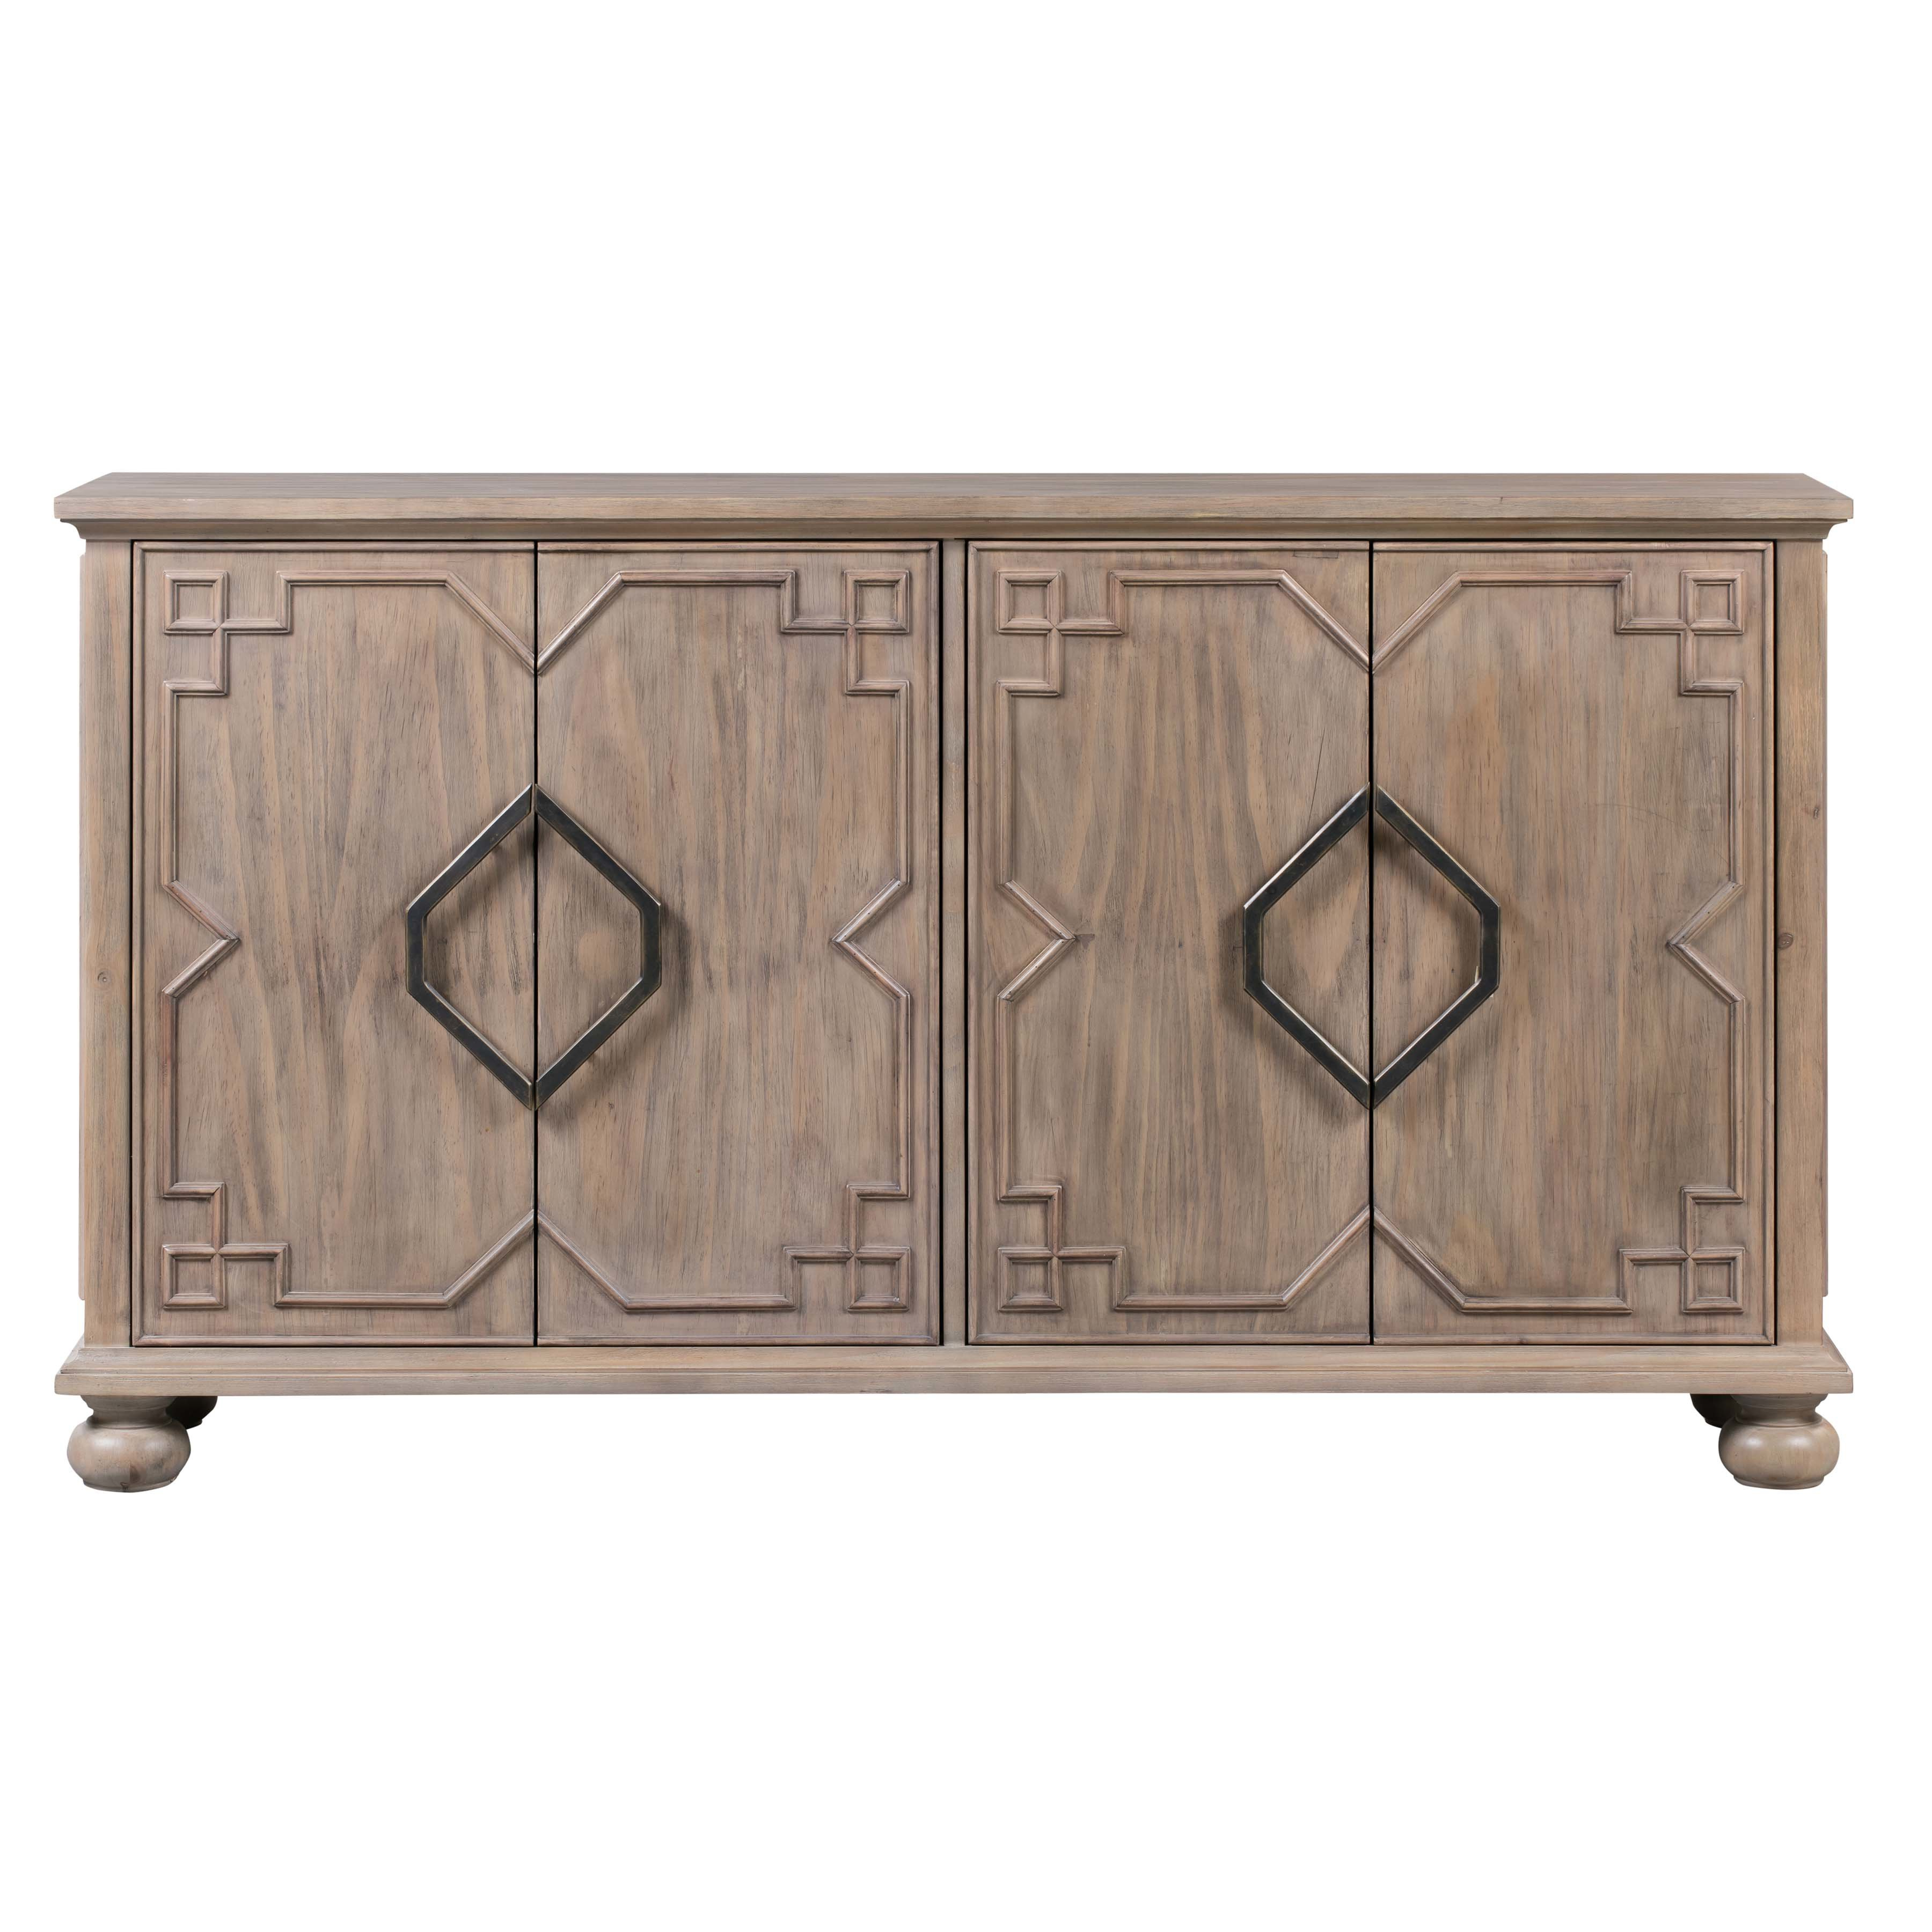 Assembled Sideboards & Buffets | Joss & Main With Regard To Chalus Sideboards (View 5 of 20)